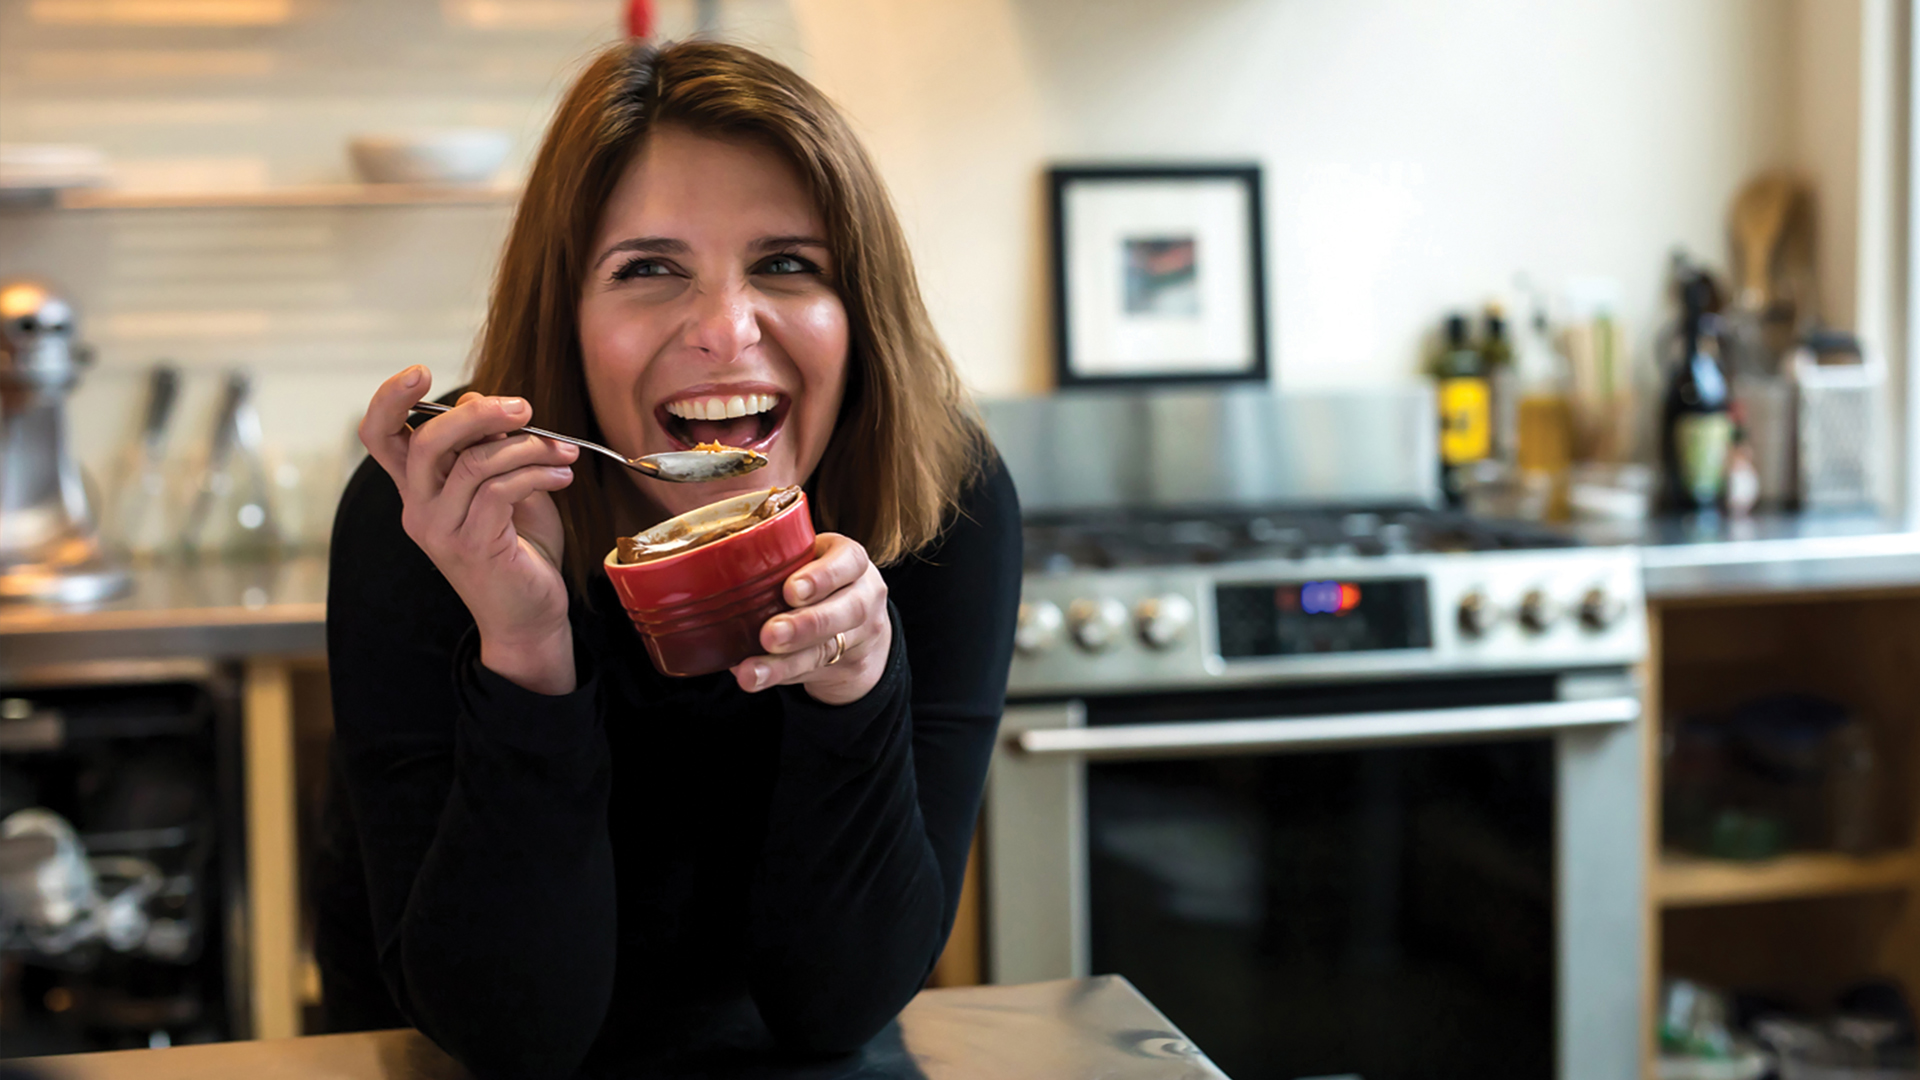 A Chef's Life Go inside the life of Chef Vivian Howard, who left the big city to open a fine dining restaurant in small-town Eastern North Carolina.